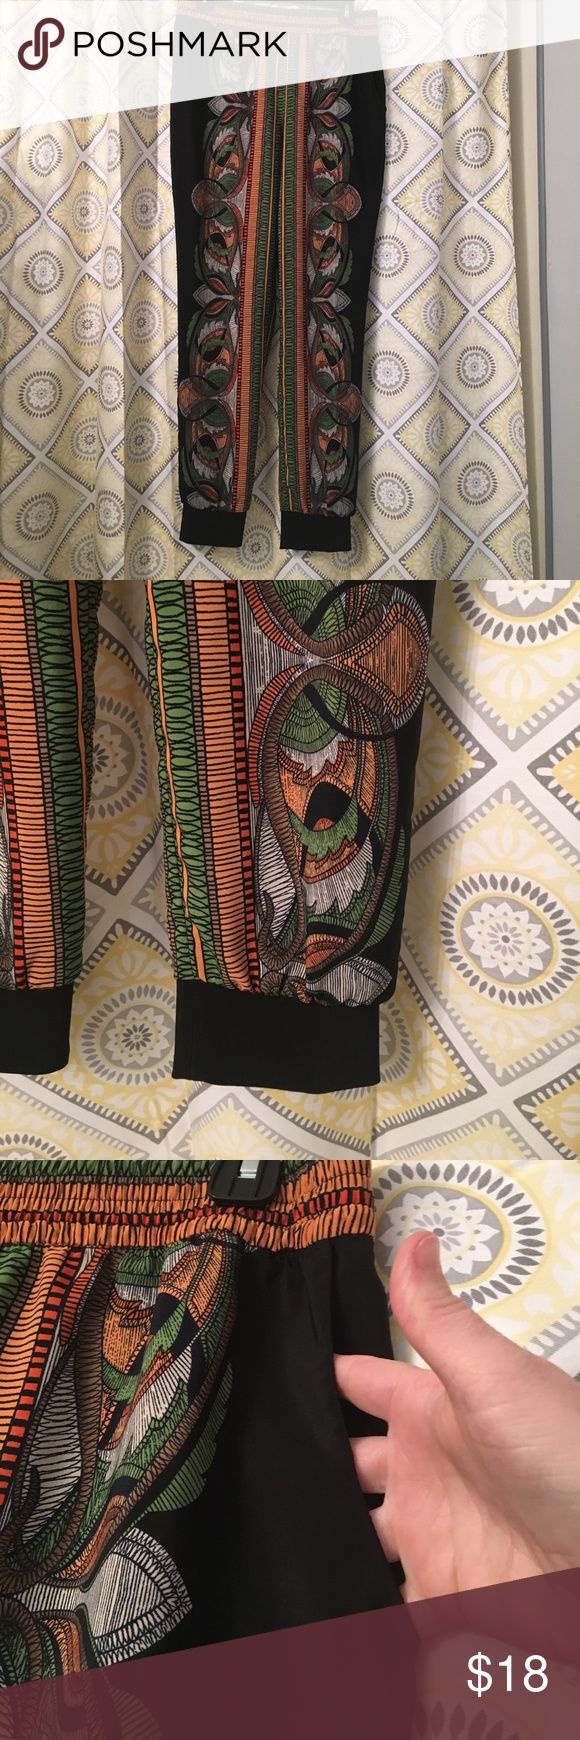 Tribal Patterned Dressy Jogger Pants Gorgeous patterned jogger style pants.  Silky material, pockets & comfortable waistband.  Can be dressed up or down. Only worn twice. Forever 21 Pants Trousers